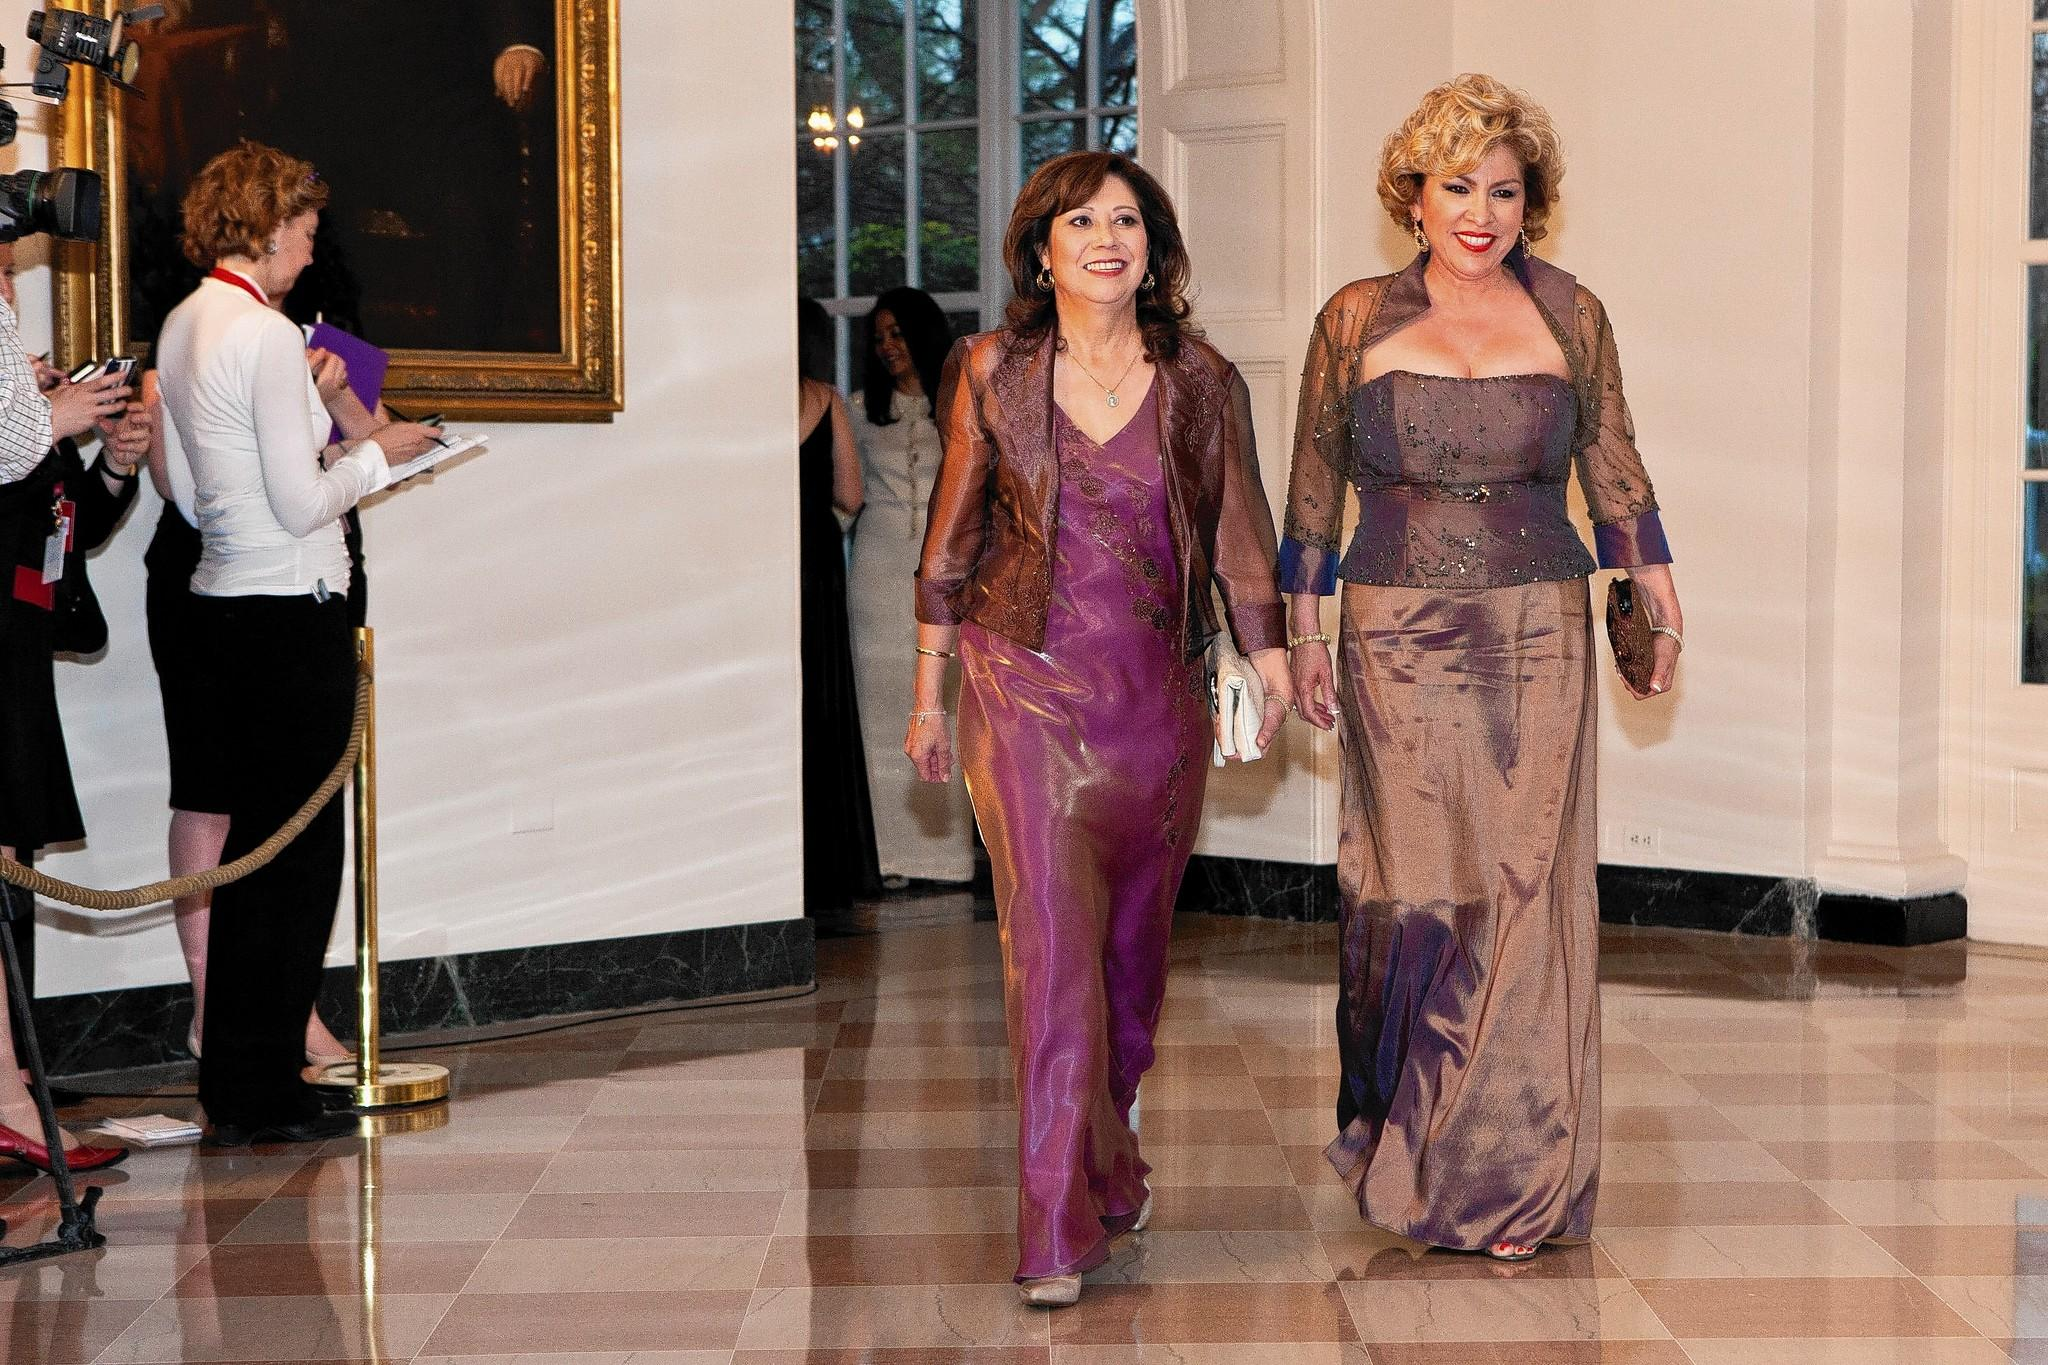 Then-Secretary of Labor Hilda Solis, left, and Rebecca Zapanta arrive for a state dinner in honor of British Prime Minister David Cameron at the White House on March 14, 2012.